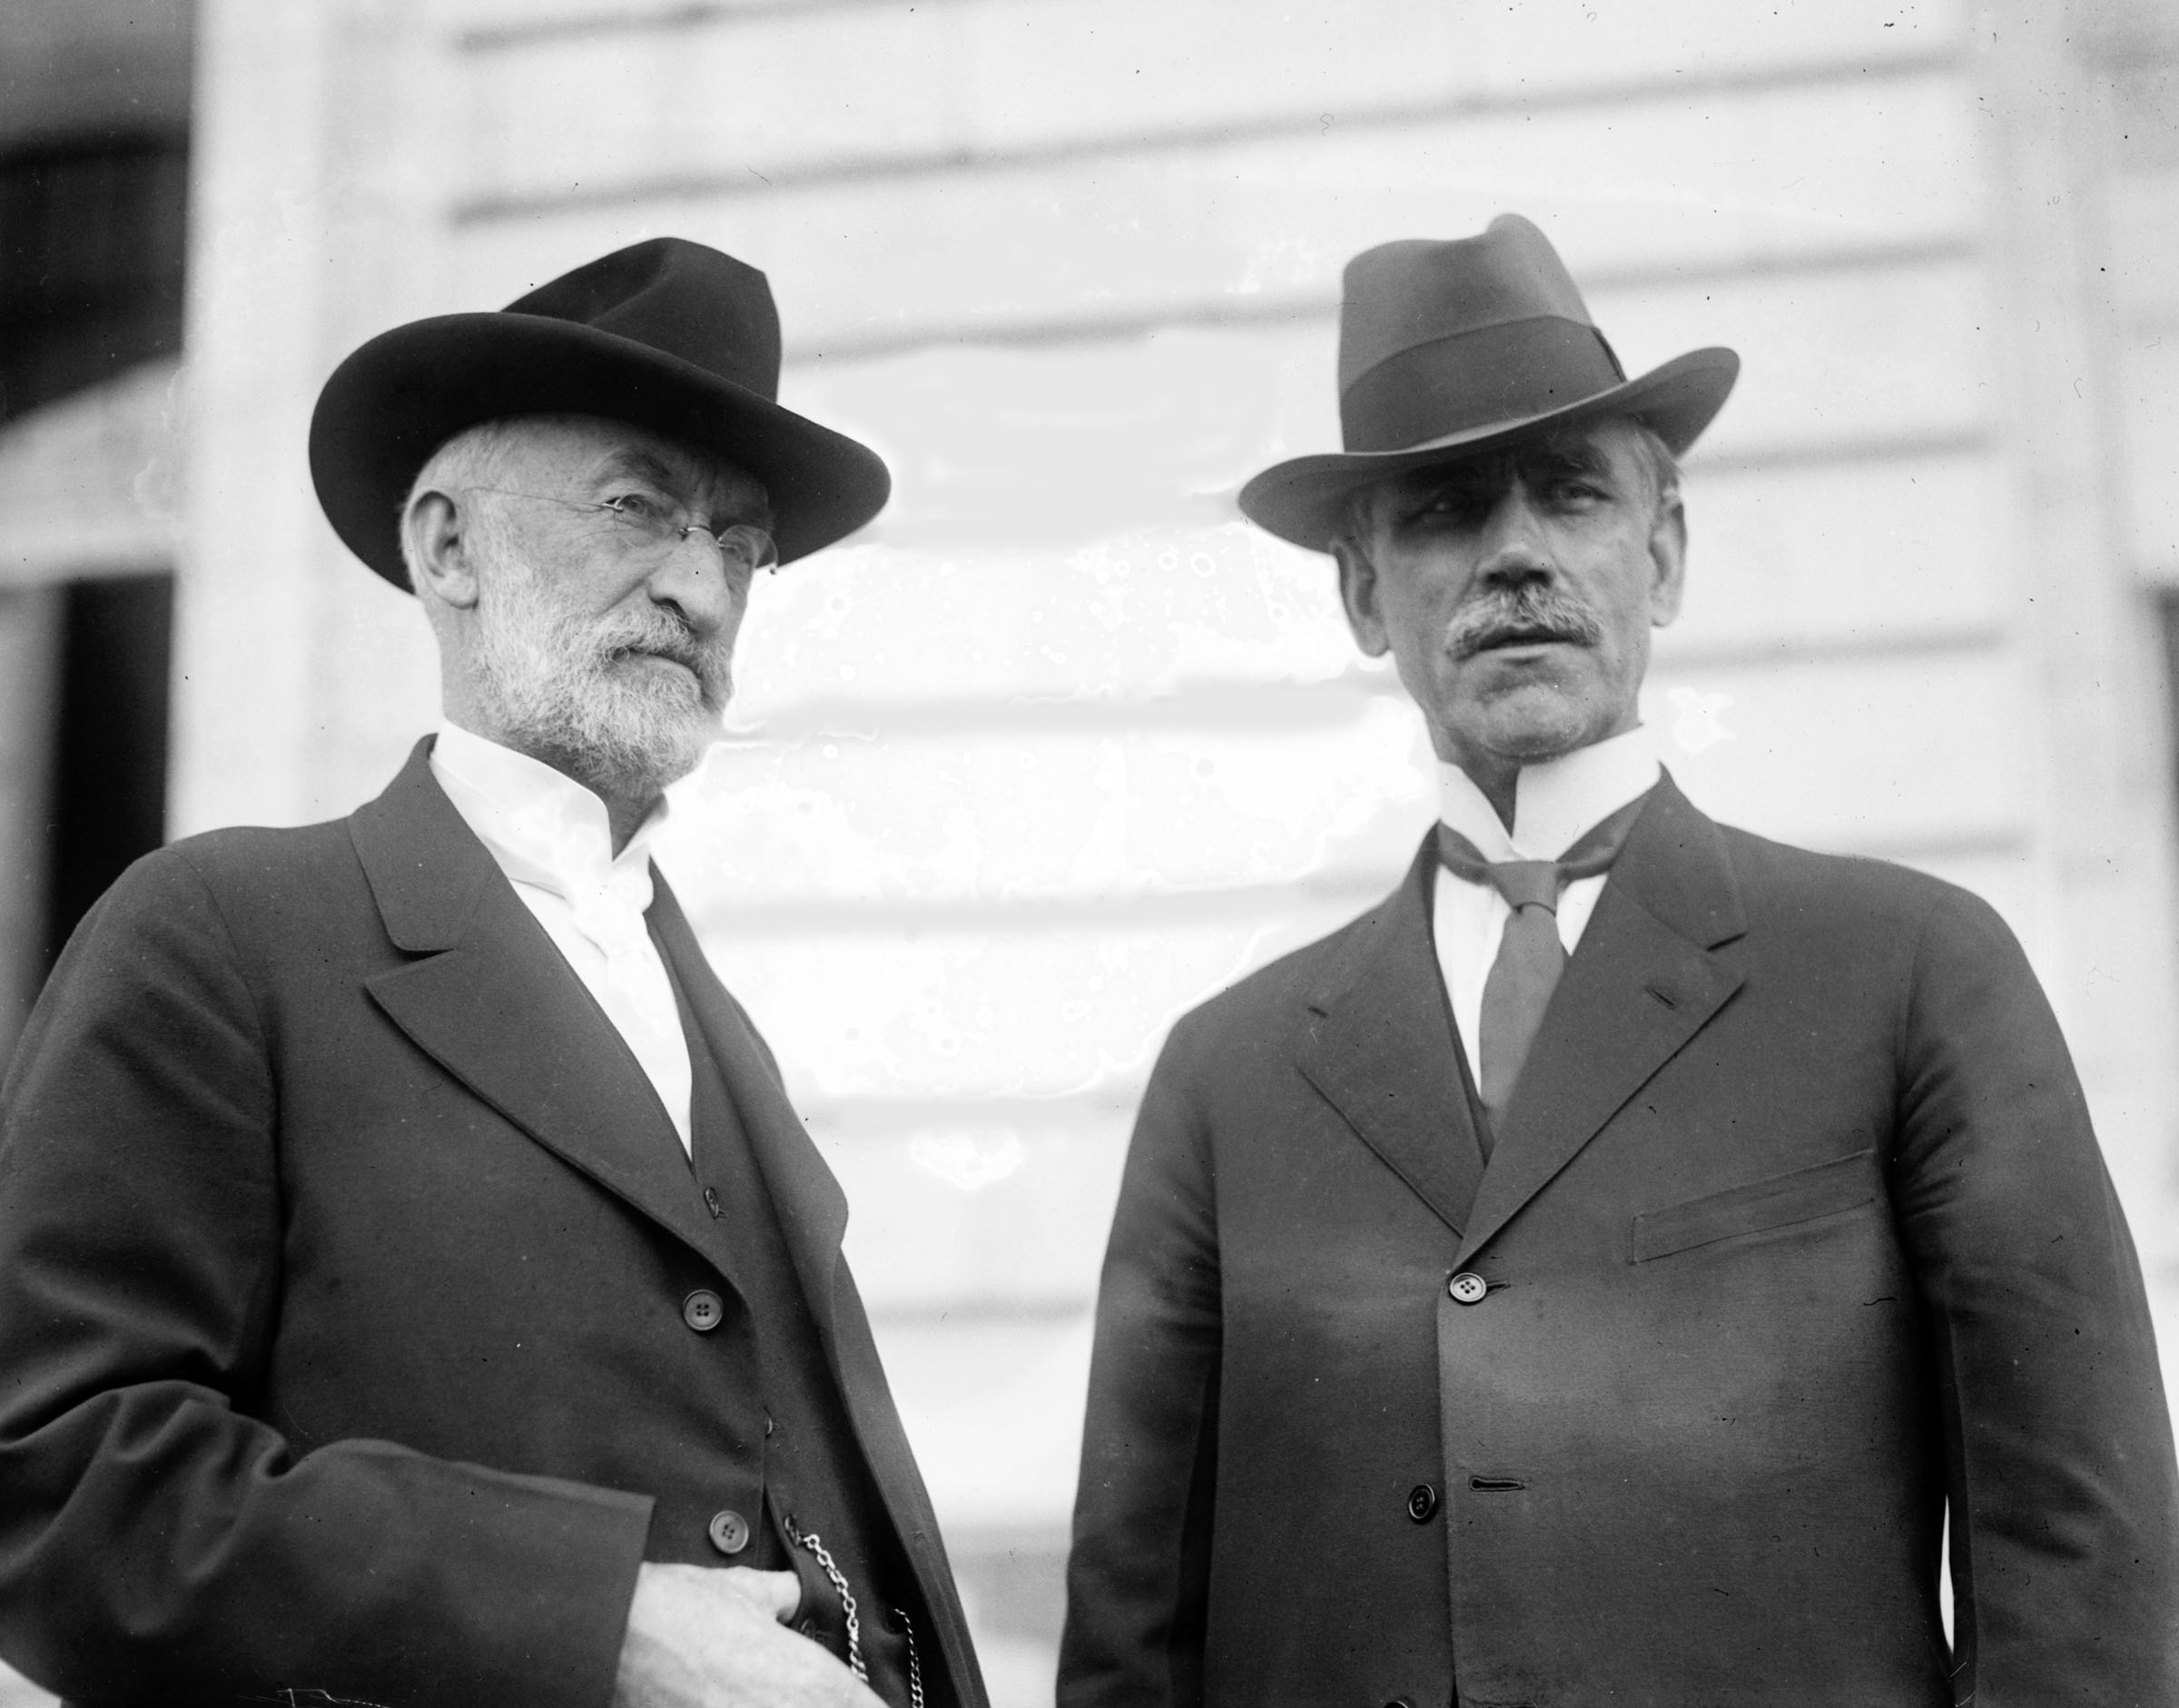 Church President Heber J. Grant and Utah Senator Reed Smoot stand outside the Senate Office Building in about 1907. President Grant presided at general conference in June 1919.